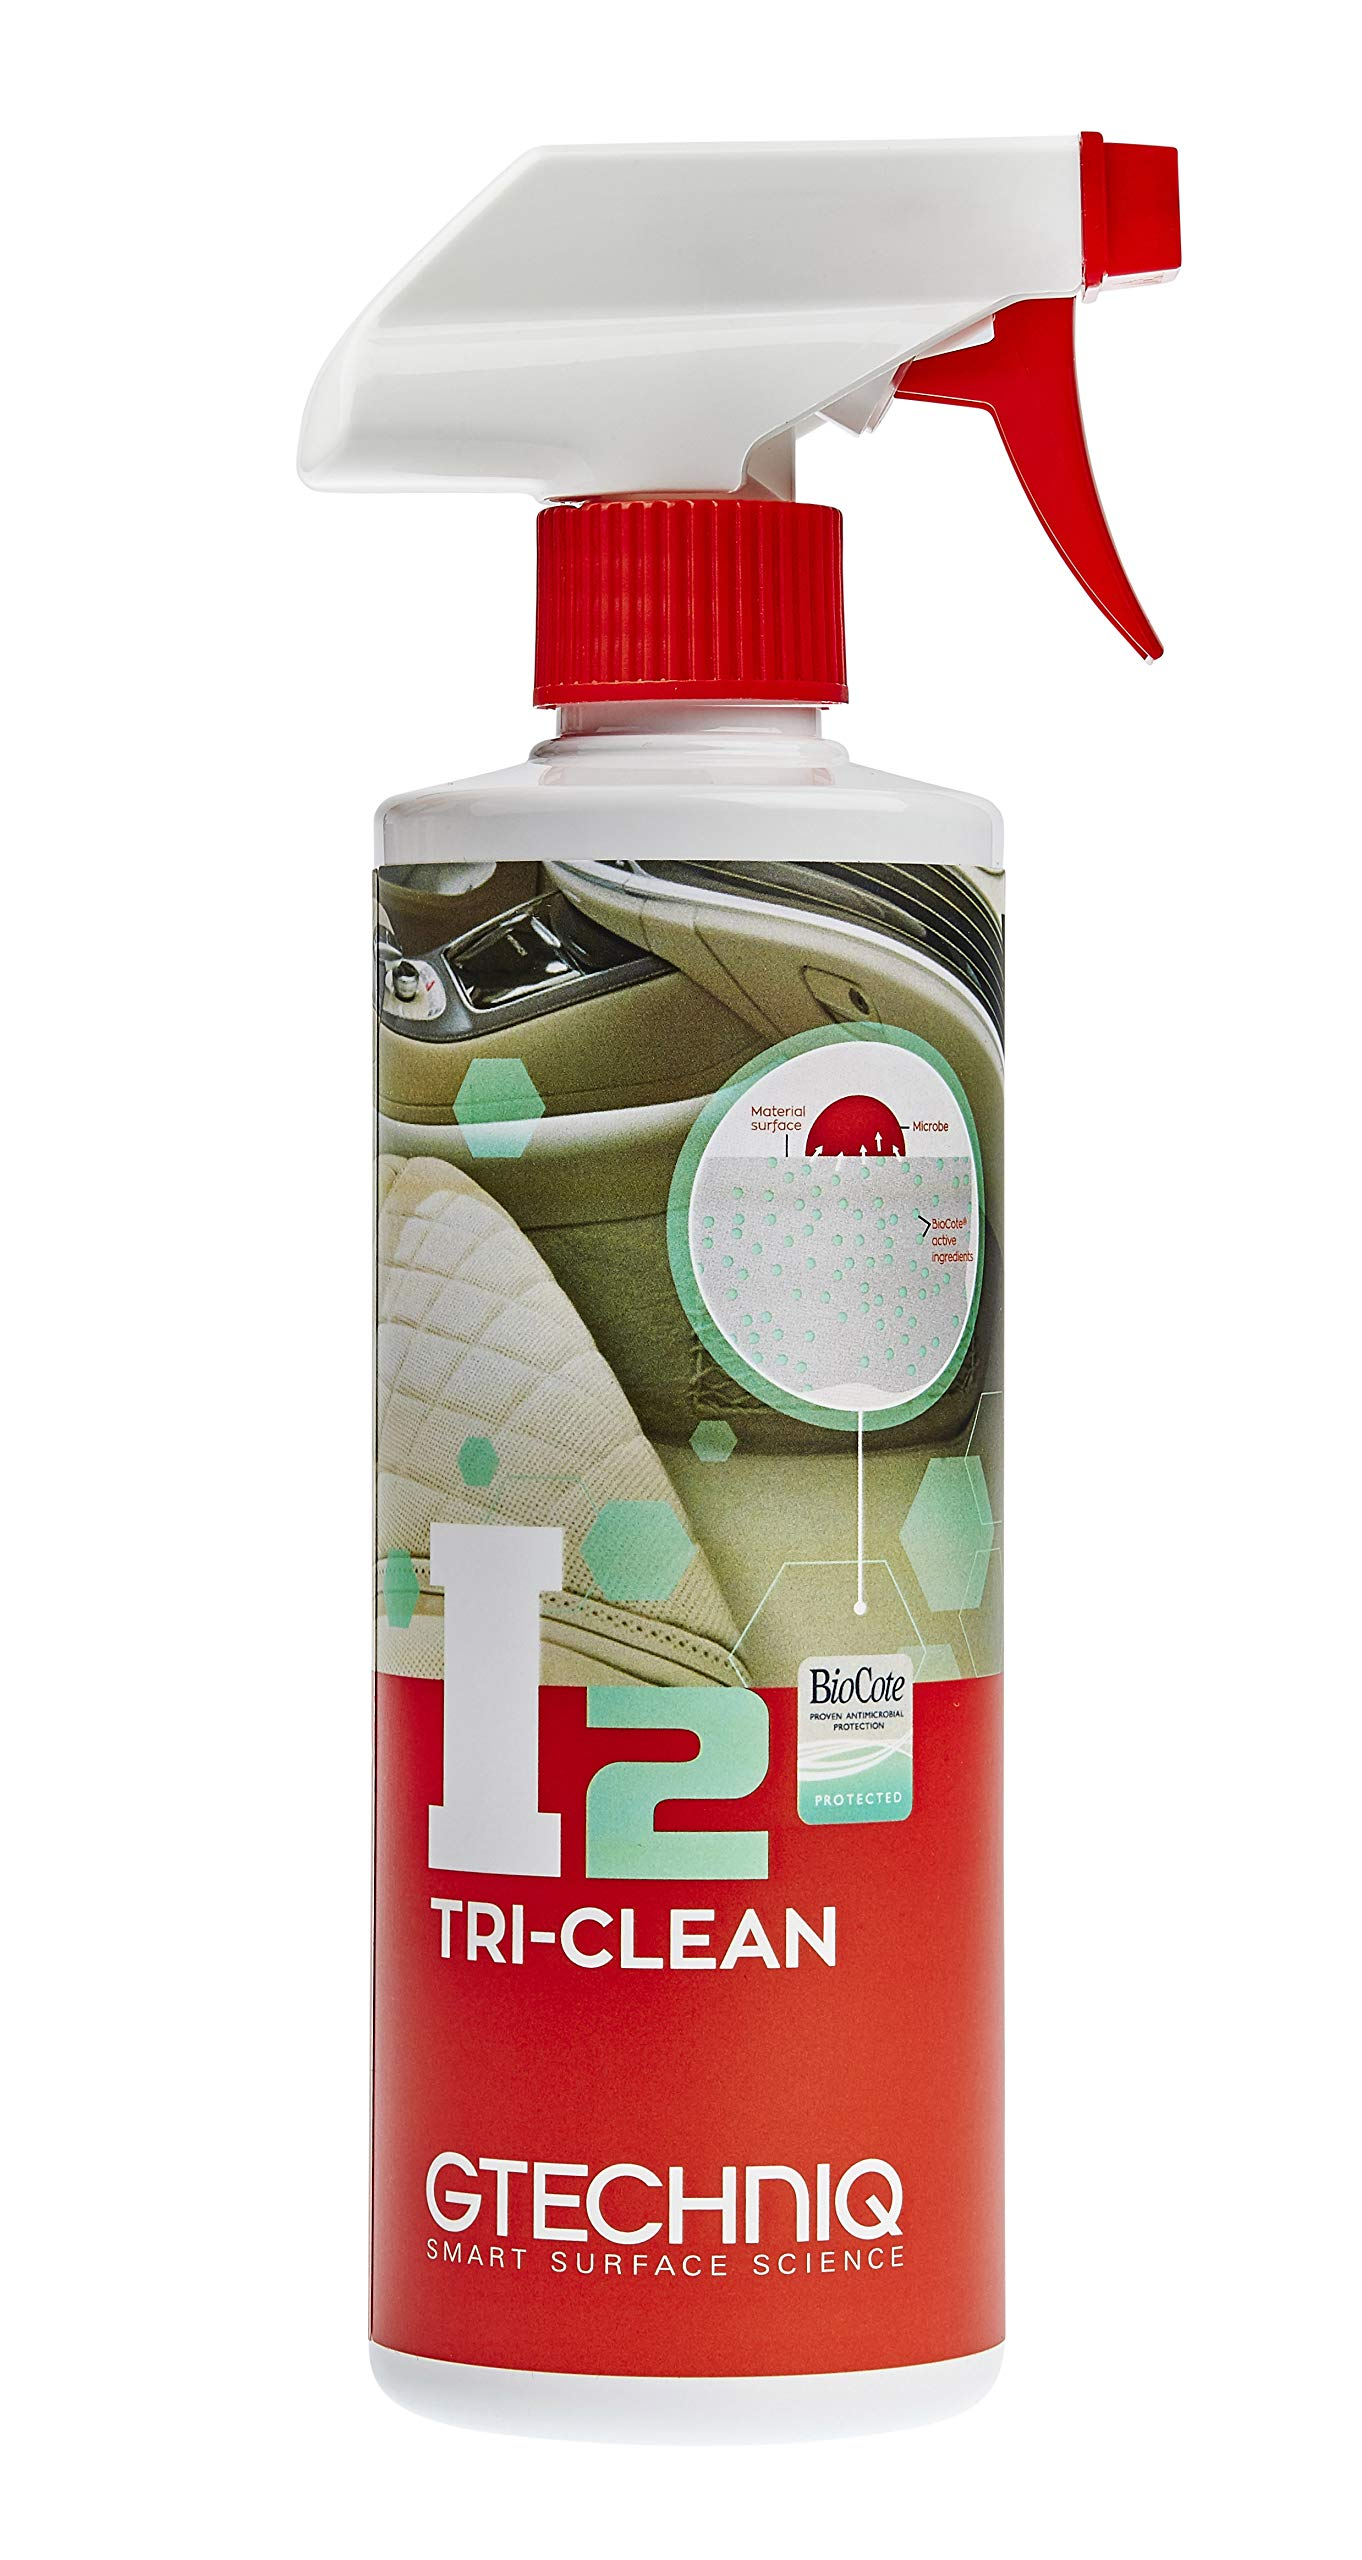 Gtechniq I2 Tri-Clean 500ml - Cleans and Protects Vehicle Upholstery from Spills, Dirt, Mess - Absorbs Odour, Kills 99.9% Bacteria, pH Neutral Cleaner - Lab Tested, Added Anti Microbial Technology